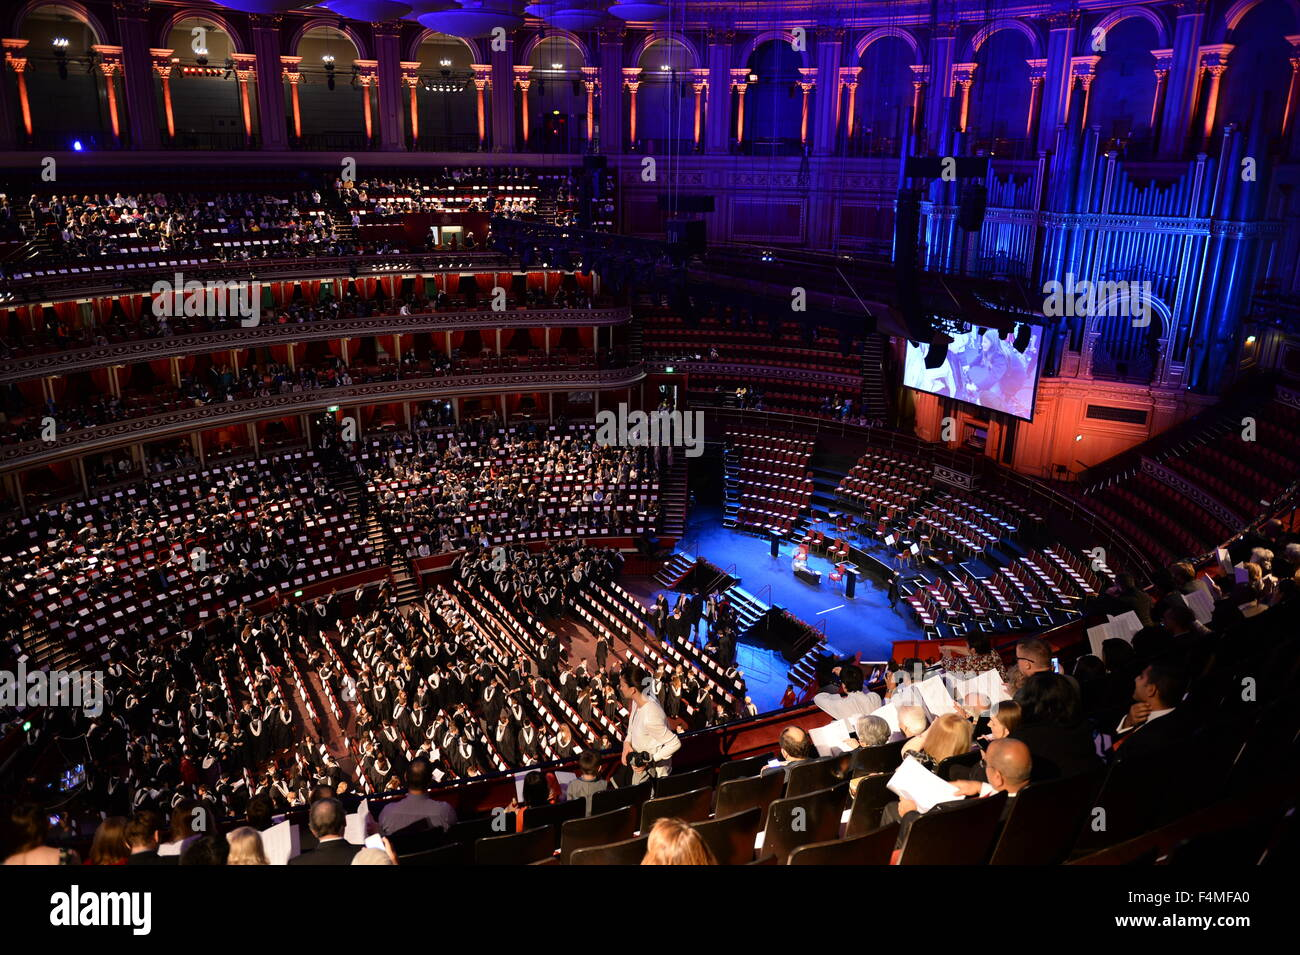 Inside the Royal Albert Hall graduates and families on Imperial College London Commemoration day - Stock Image